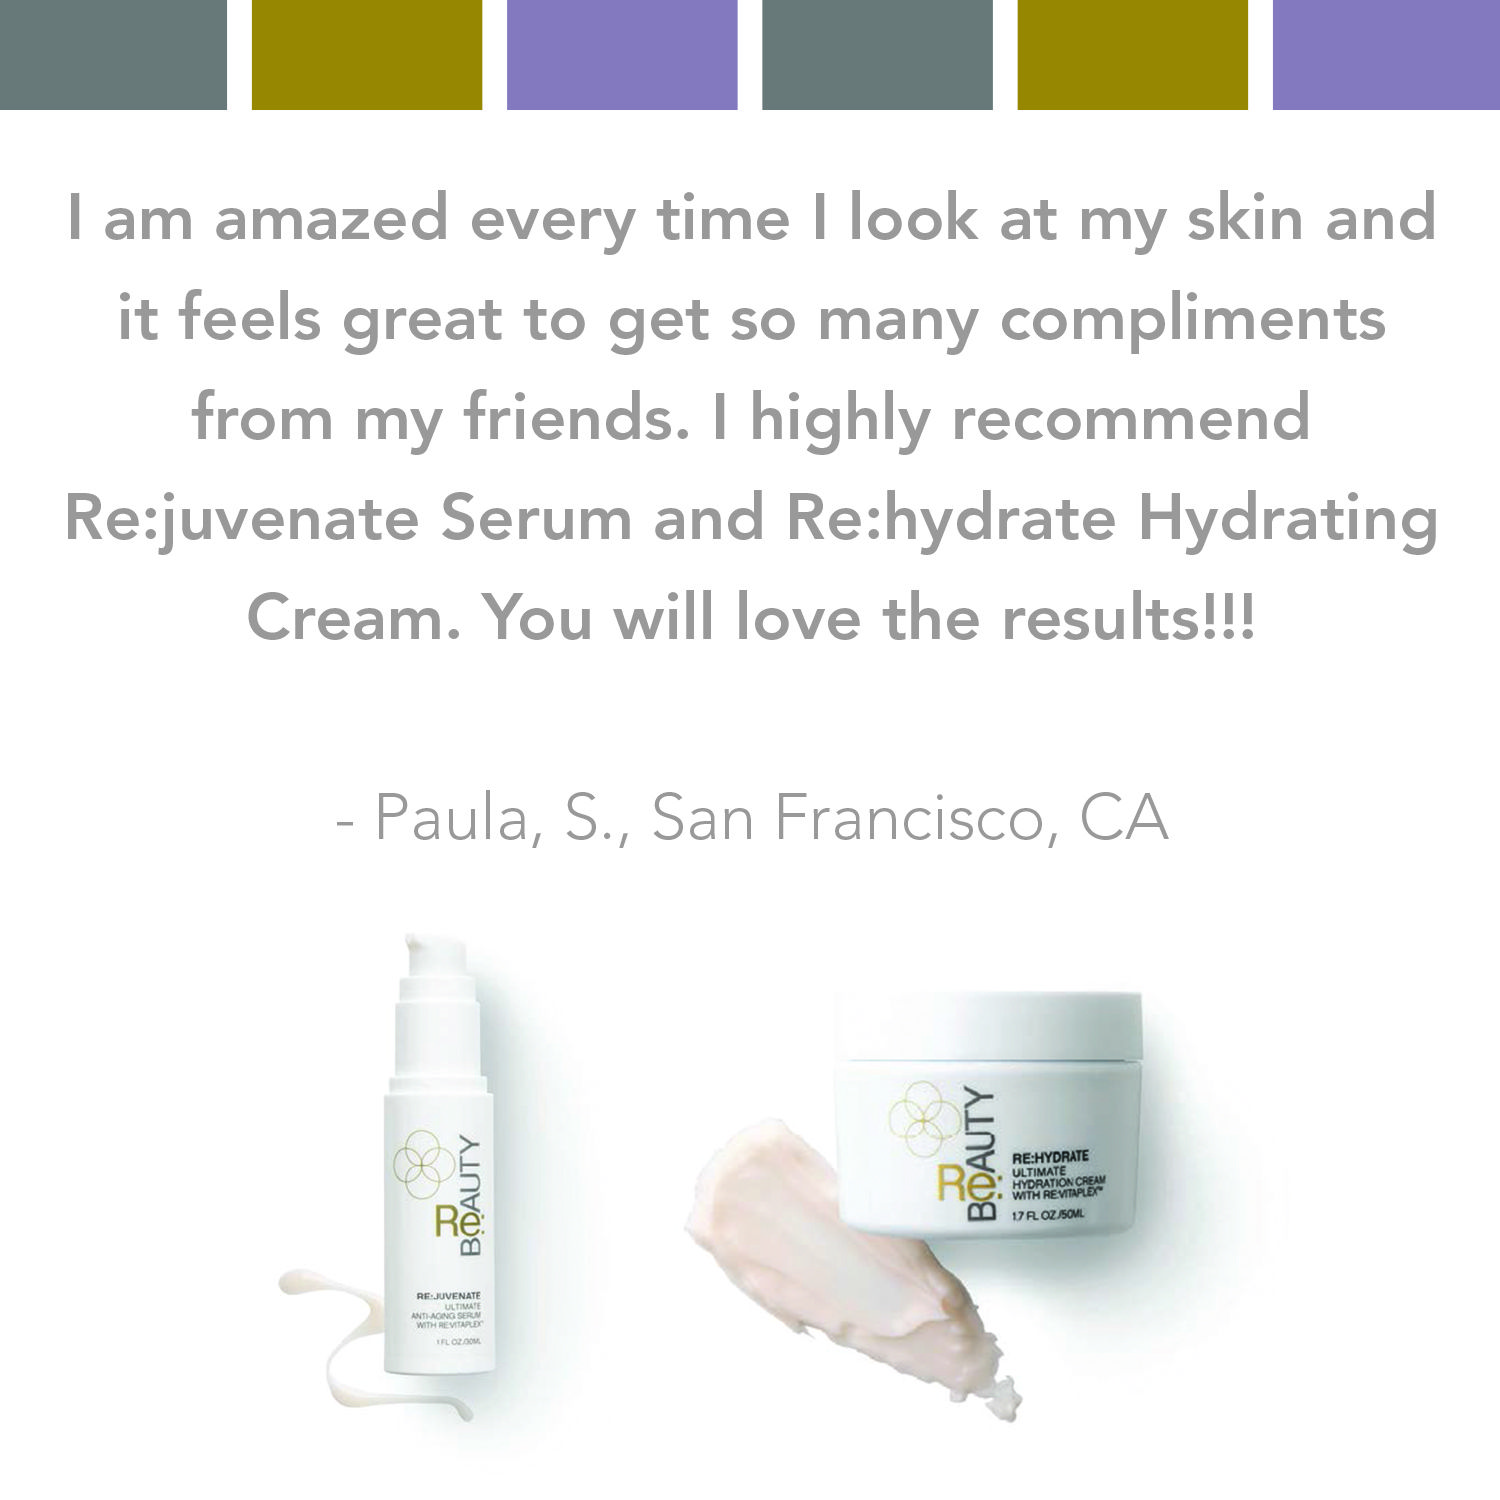 testimonialtuesday Products you can't stop talking about